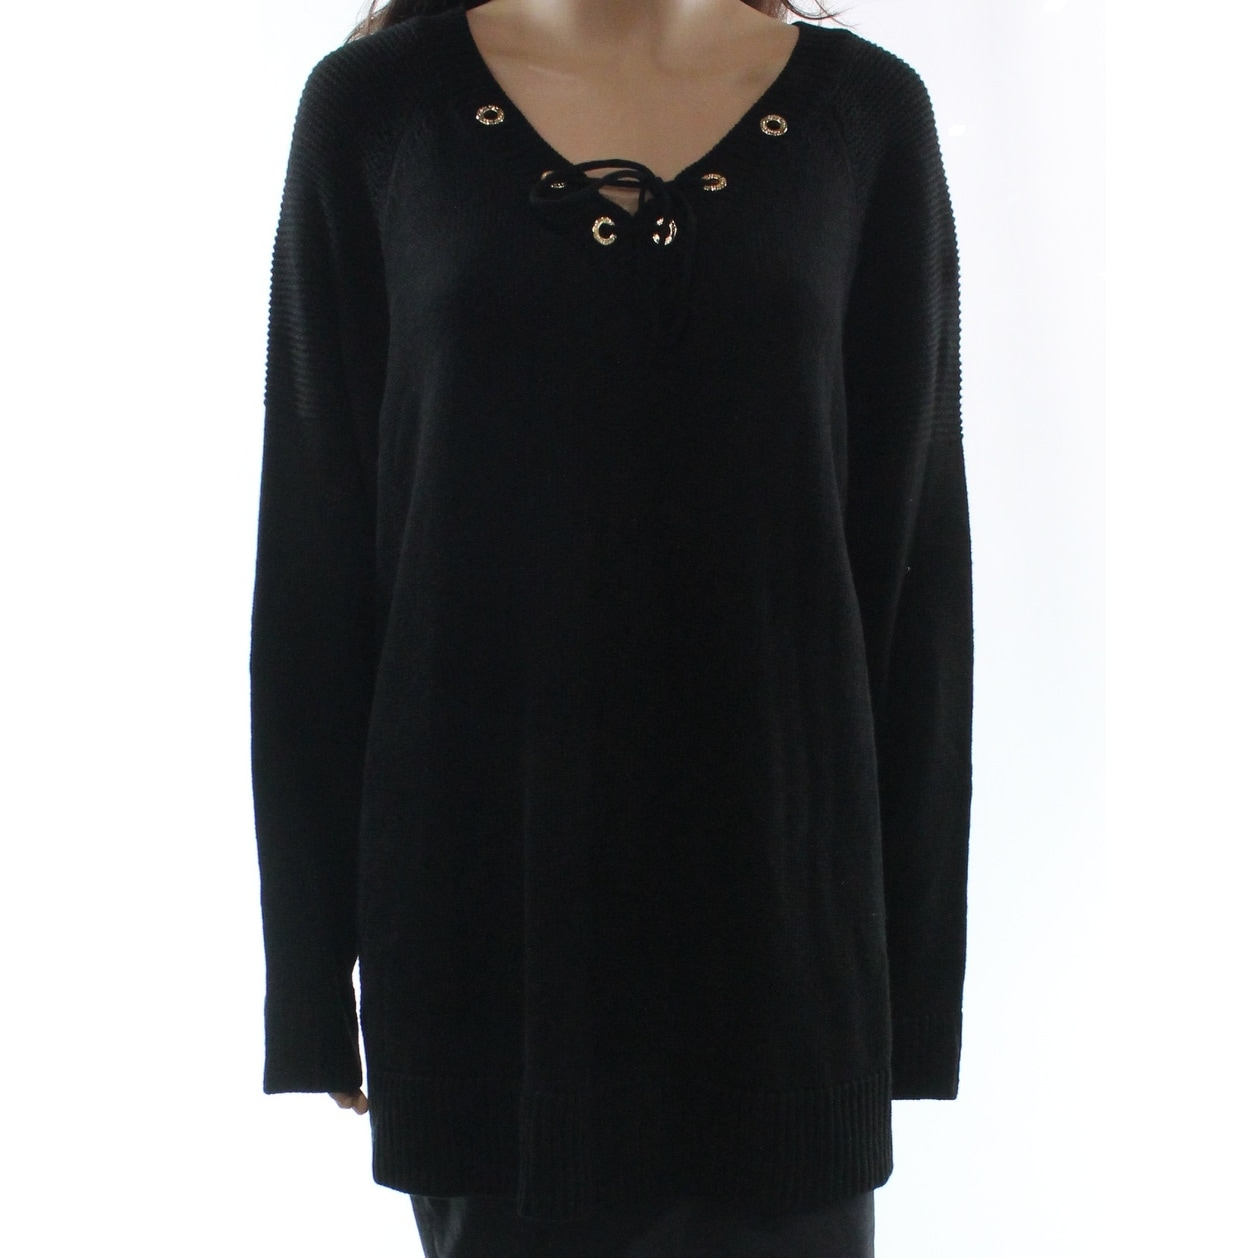 Calvin Klein New Black Womens Size 1x Plus V Neck Lace Up Sweater